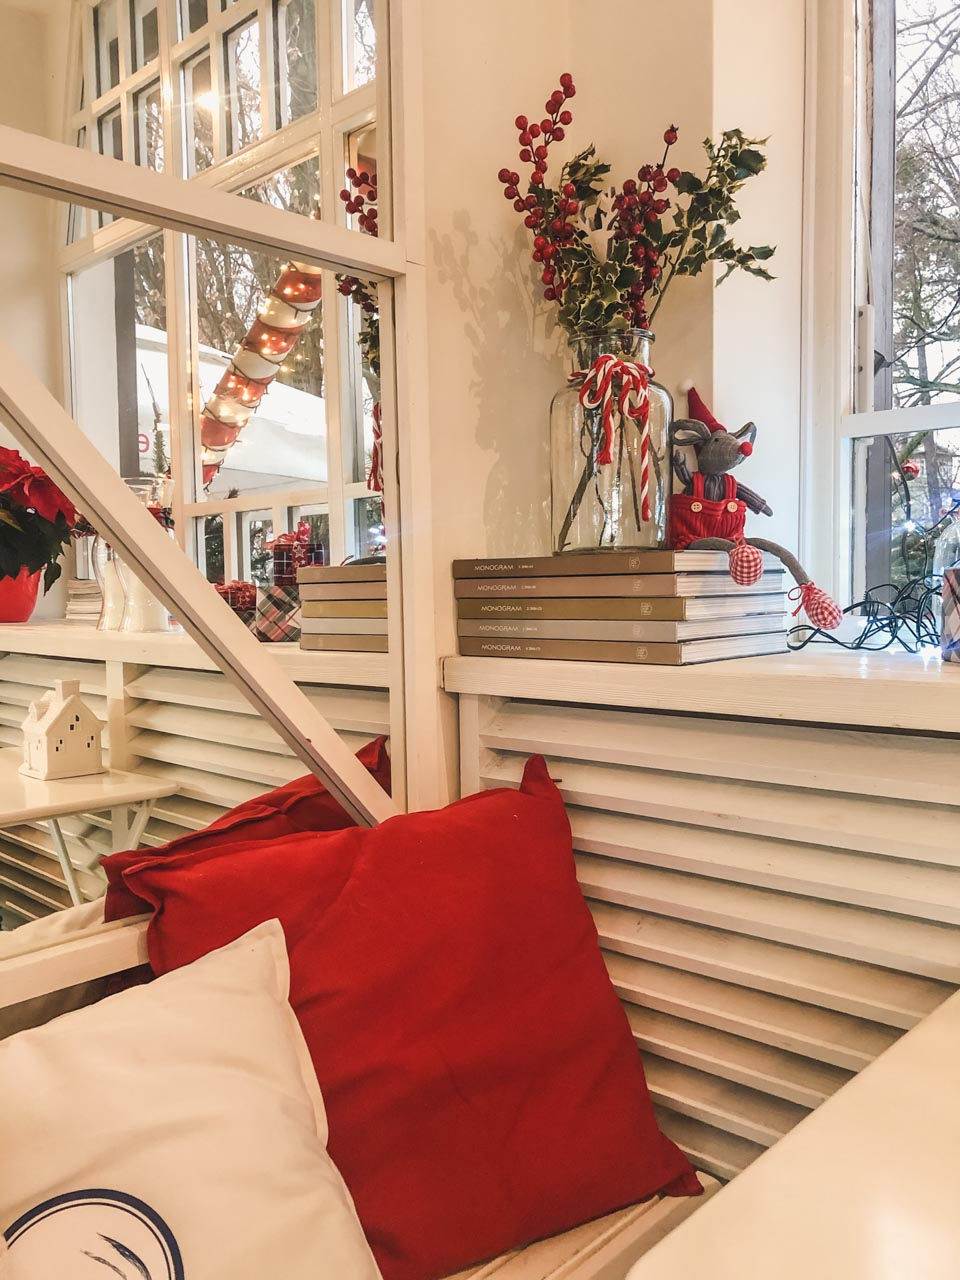 White and red pillows and Christmas decorations on a window sill